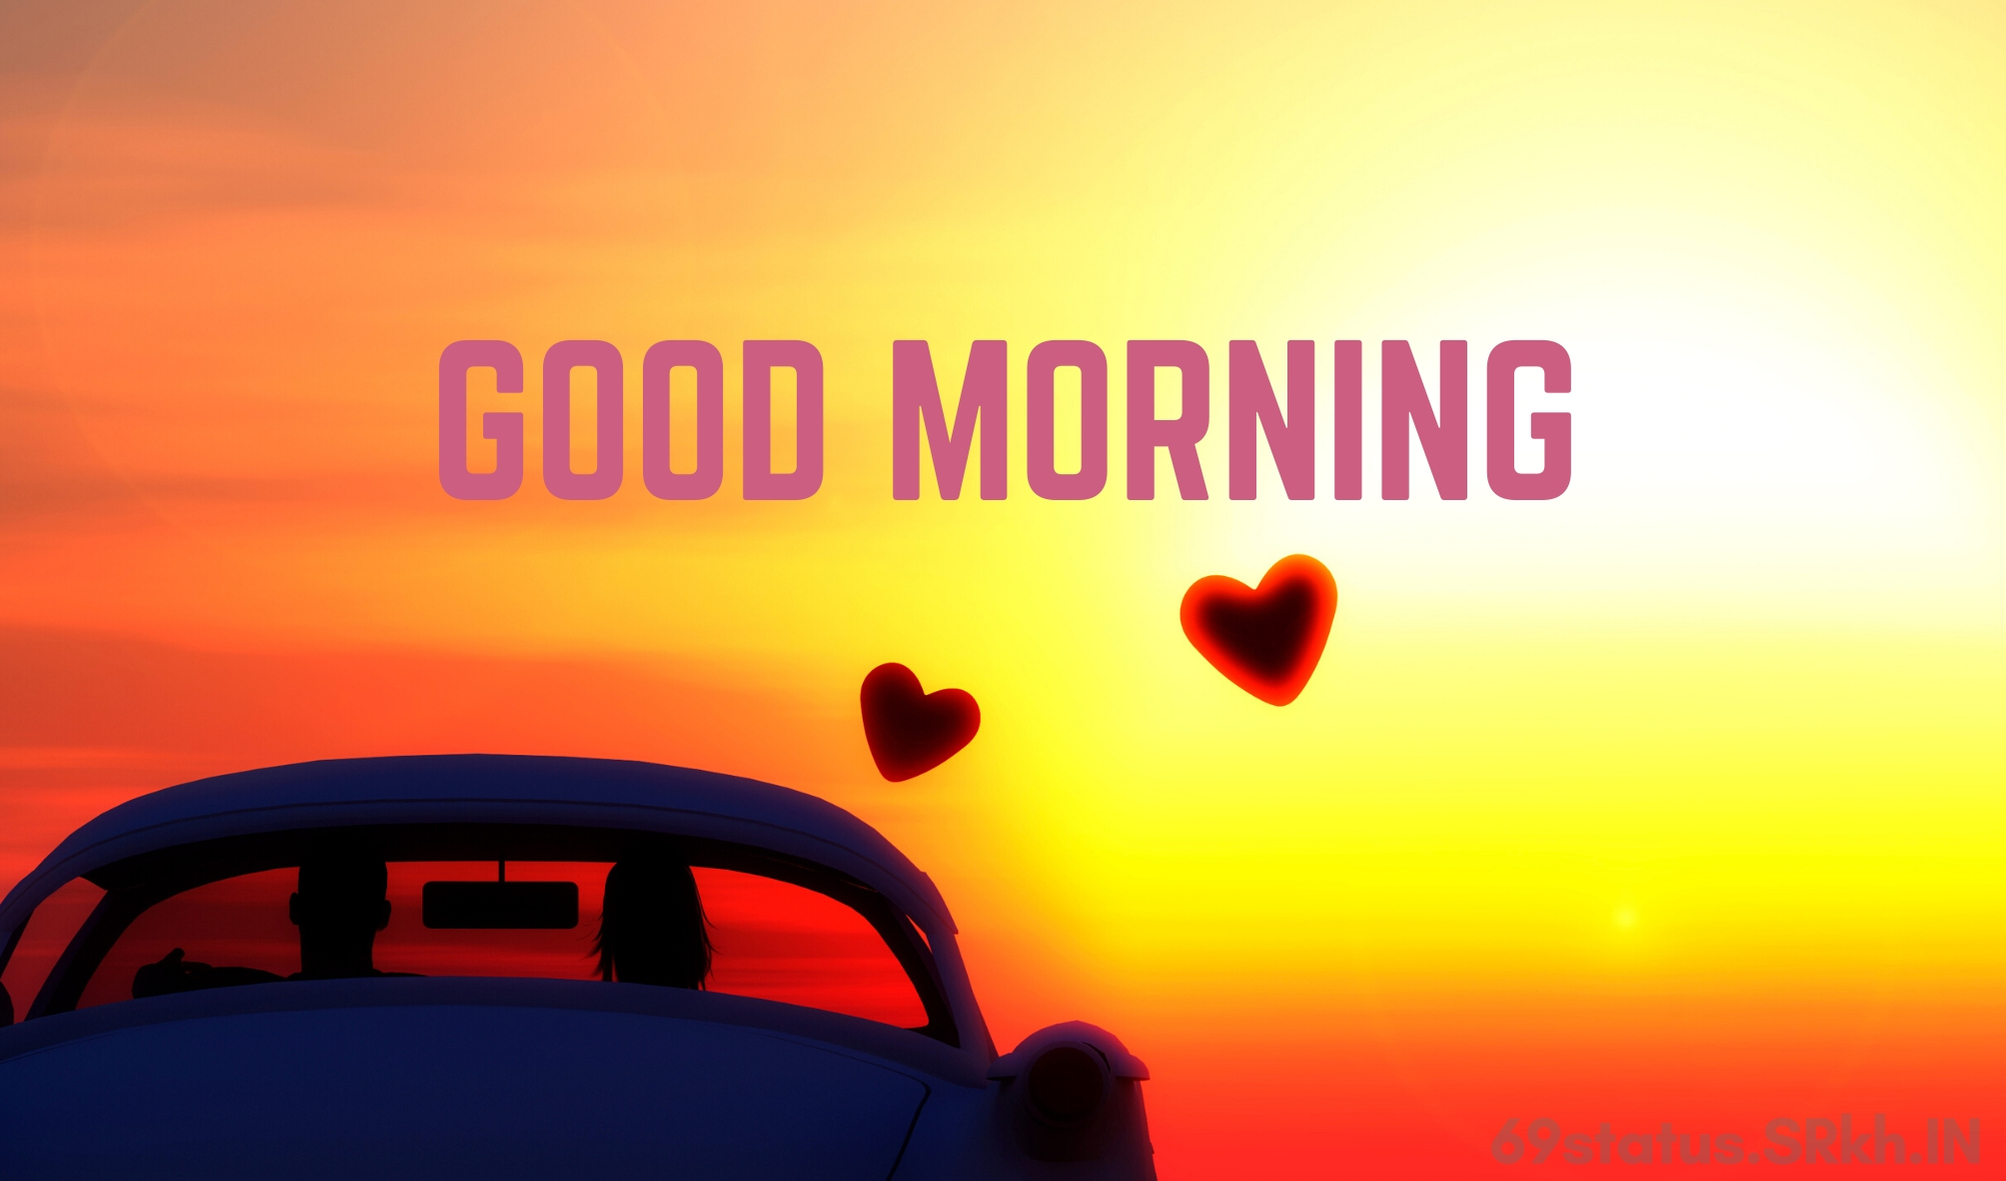 Good Morning Romantic Sun Rising Image full HD free download.